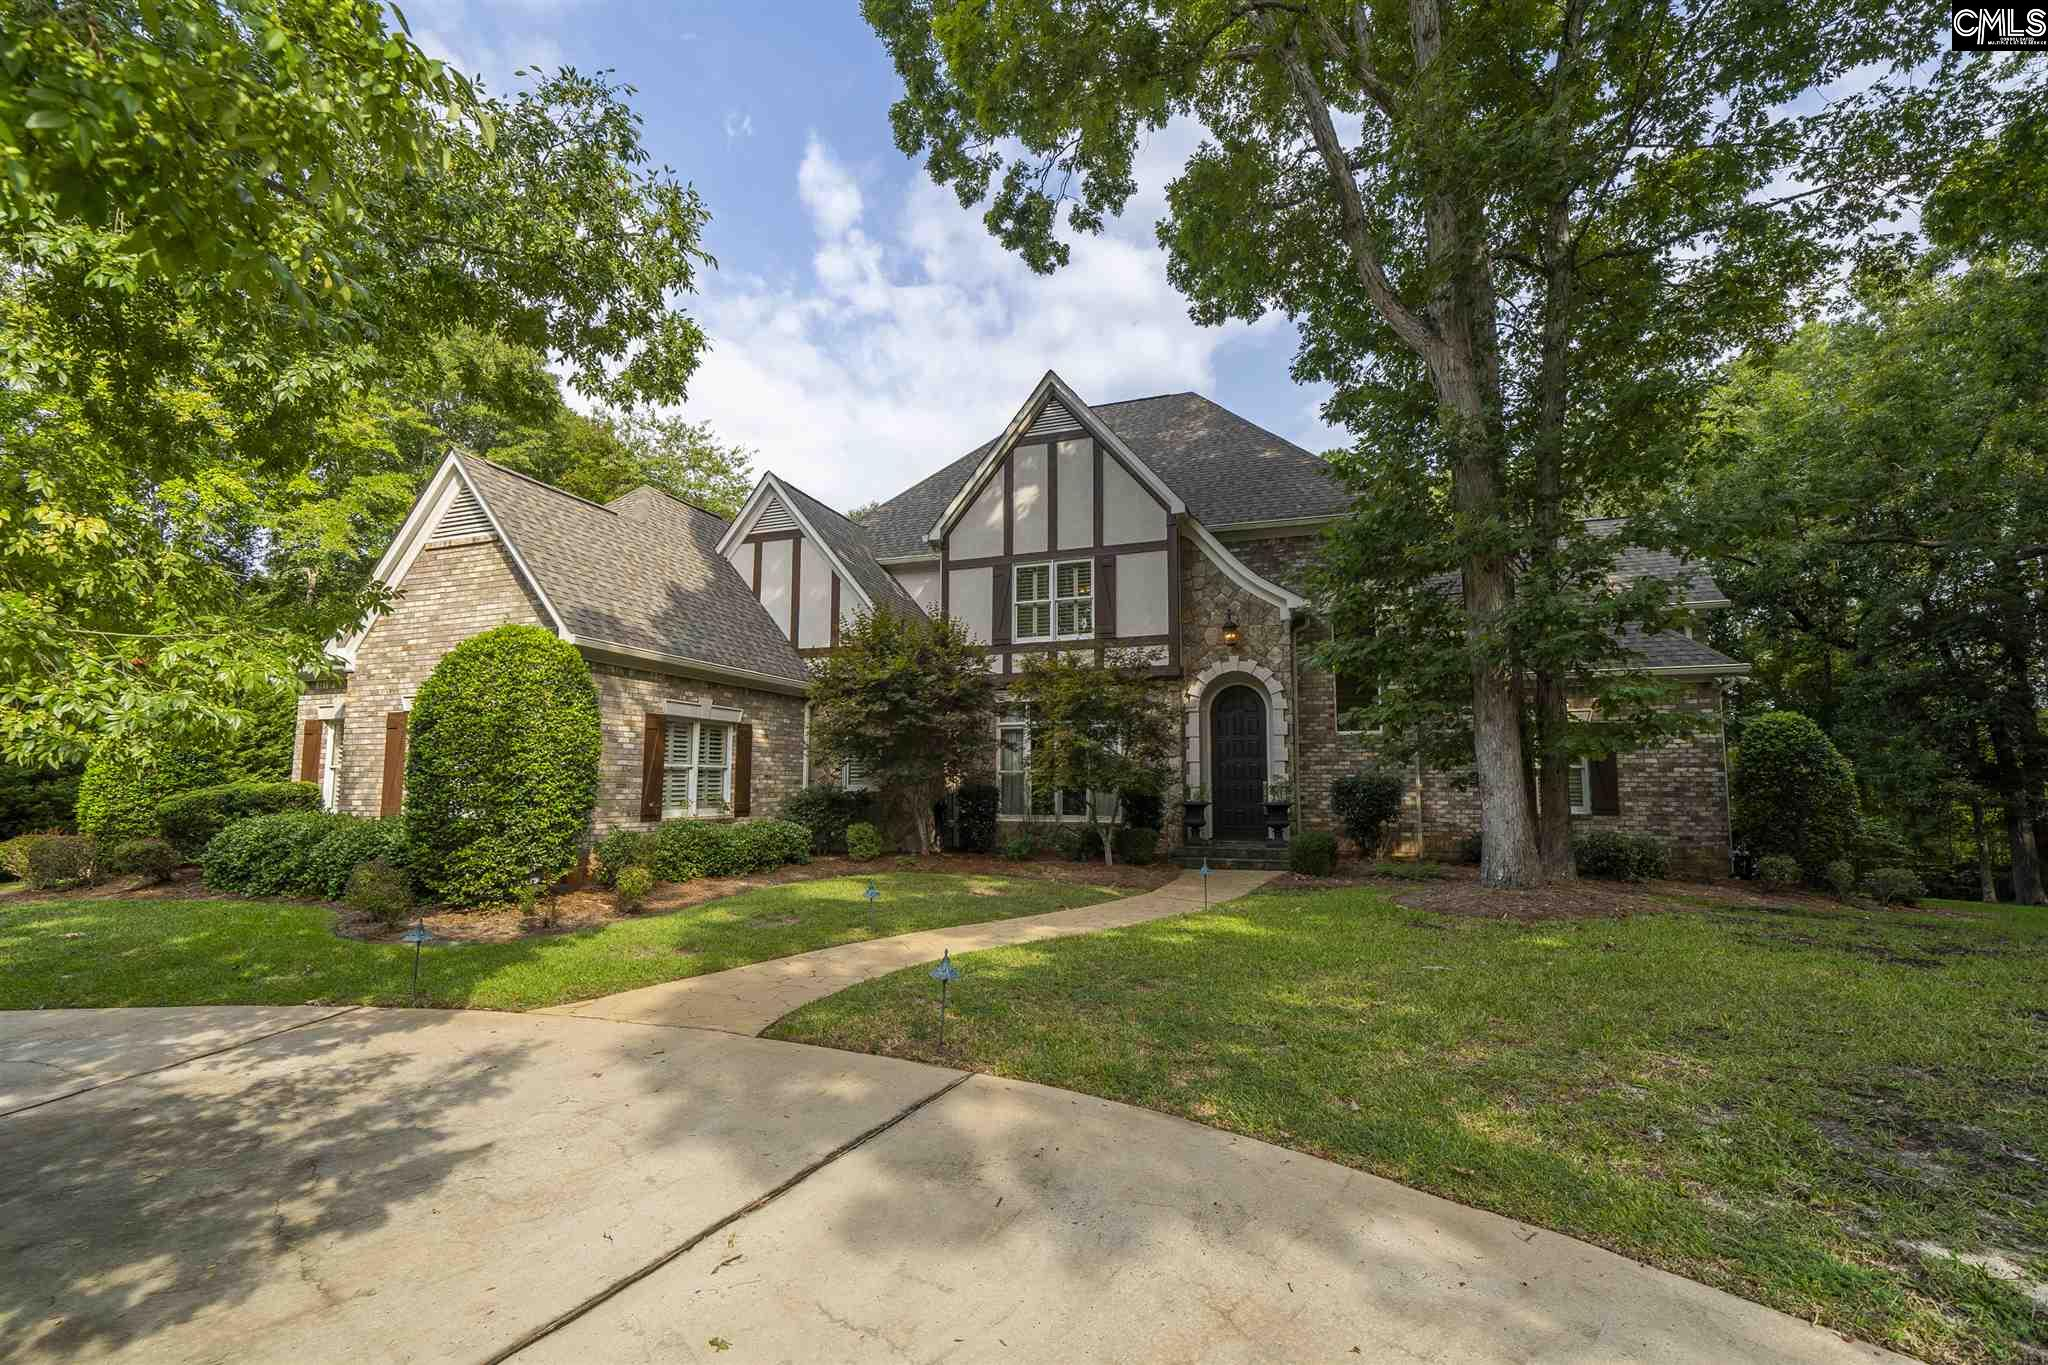 1000 Steeple Ridge Irmo, SC 29063-8041